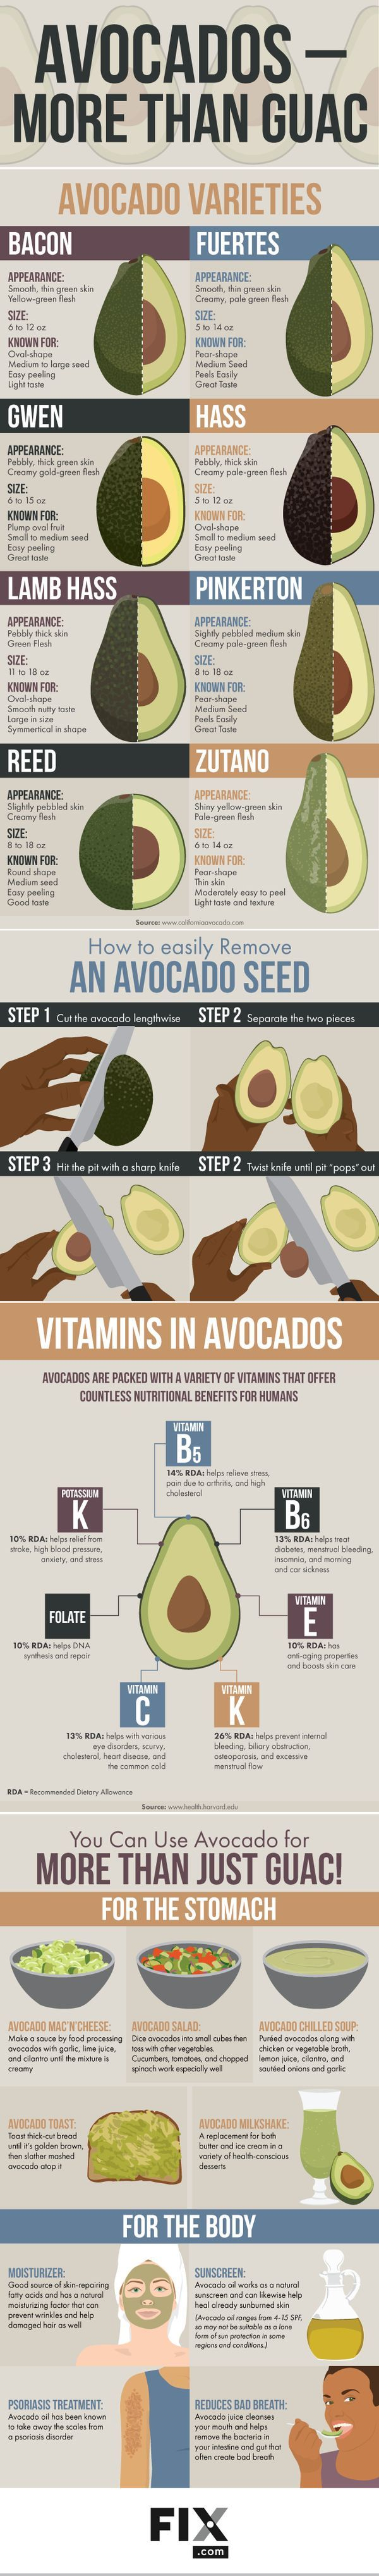 There's more to avocados than just guacamole! Learn everything you want to know about the avocado with this guide!